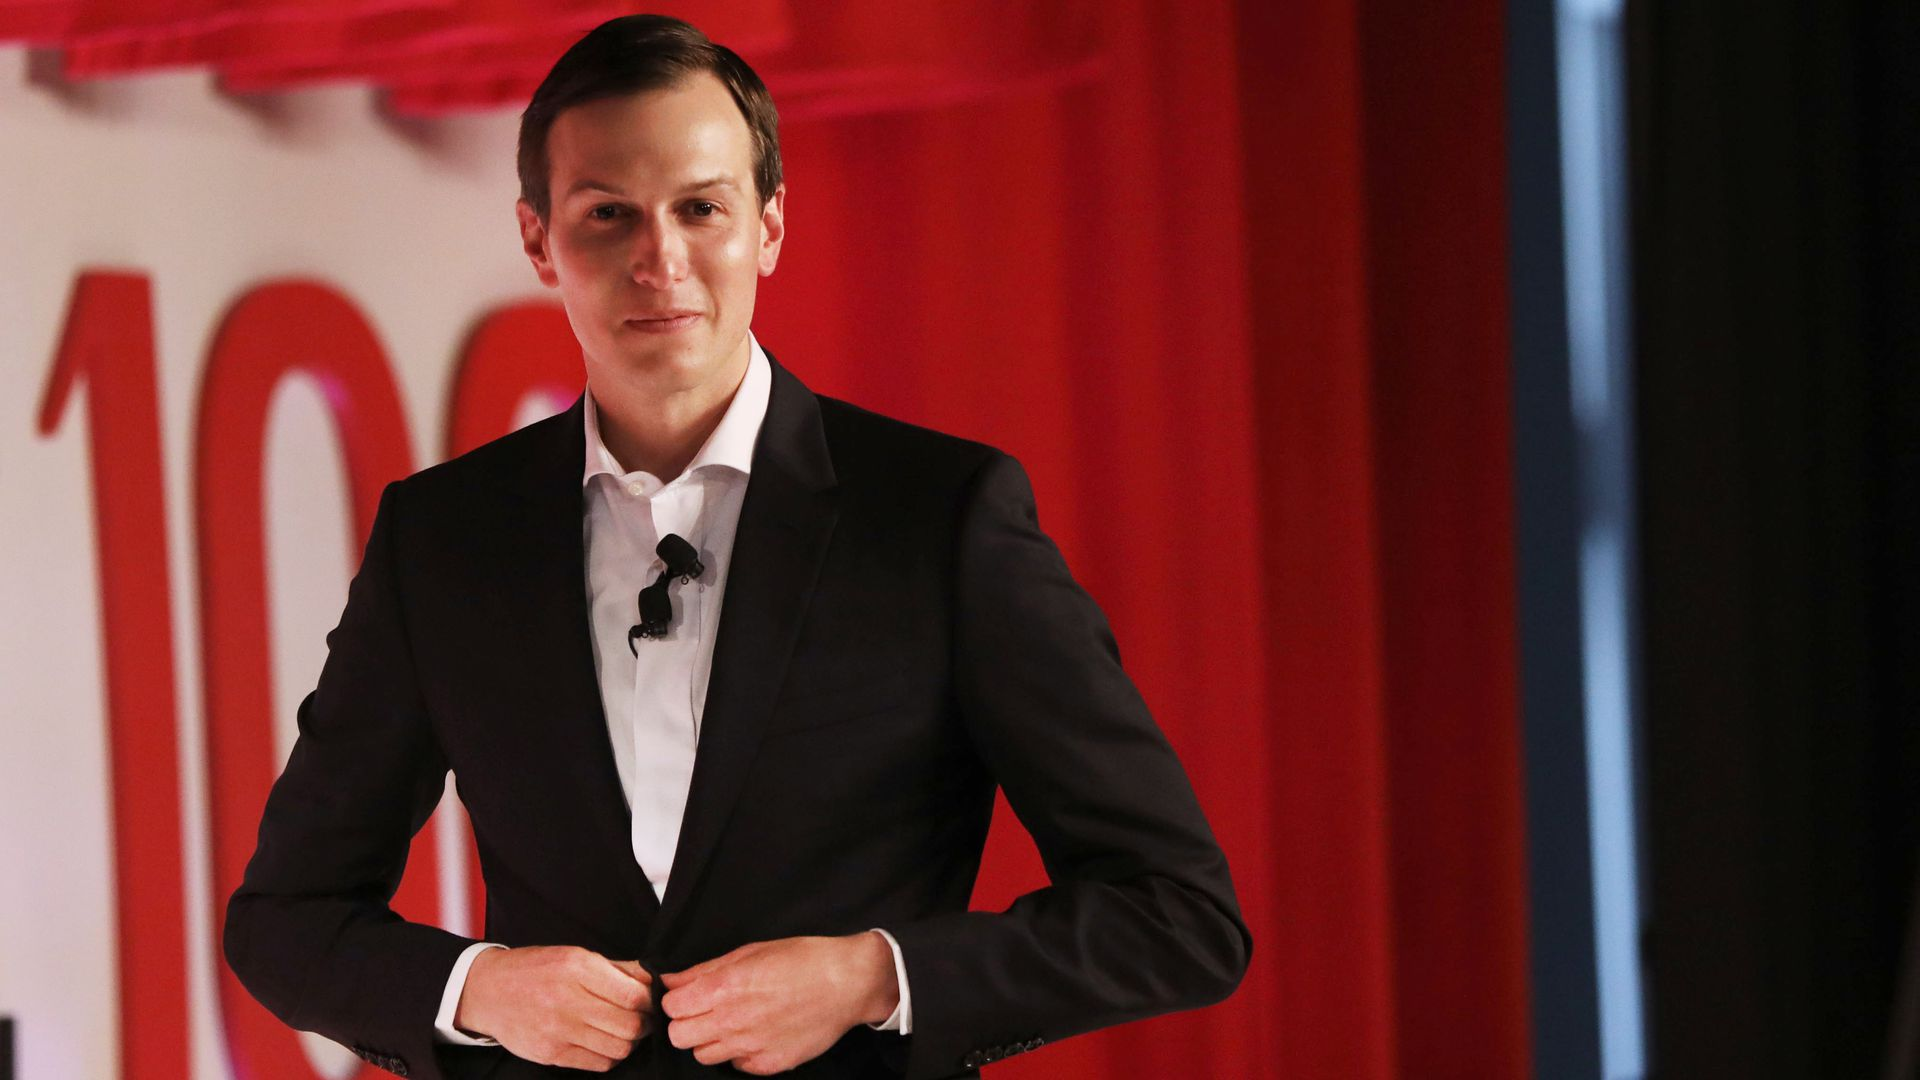 Jared Kushner walking off of a stage at an event while buttoning his blazer.